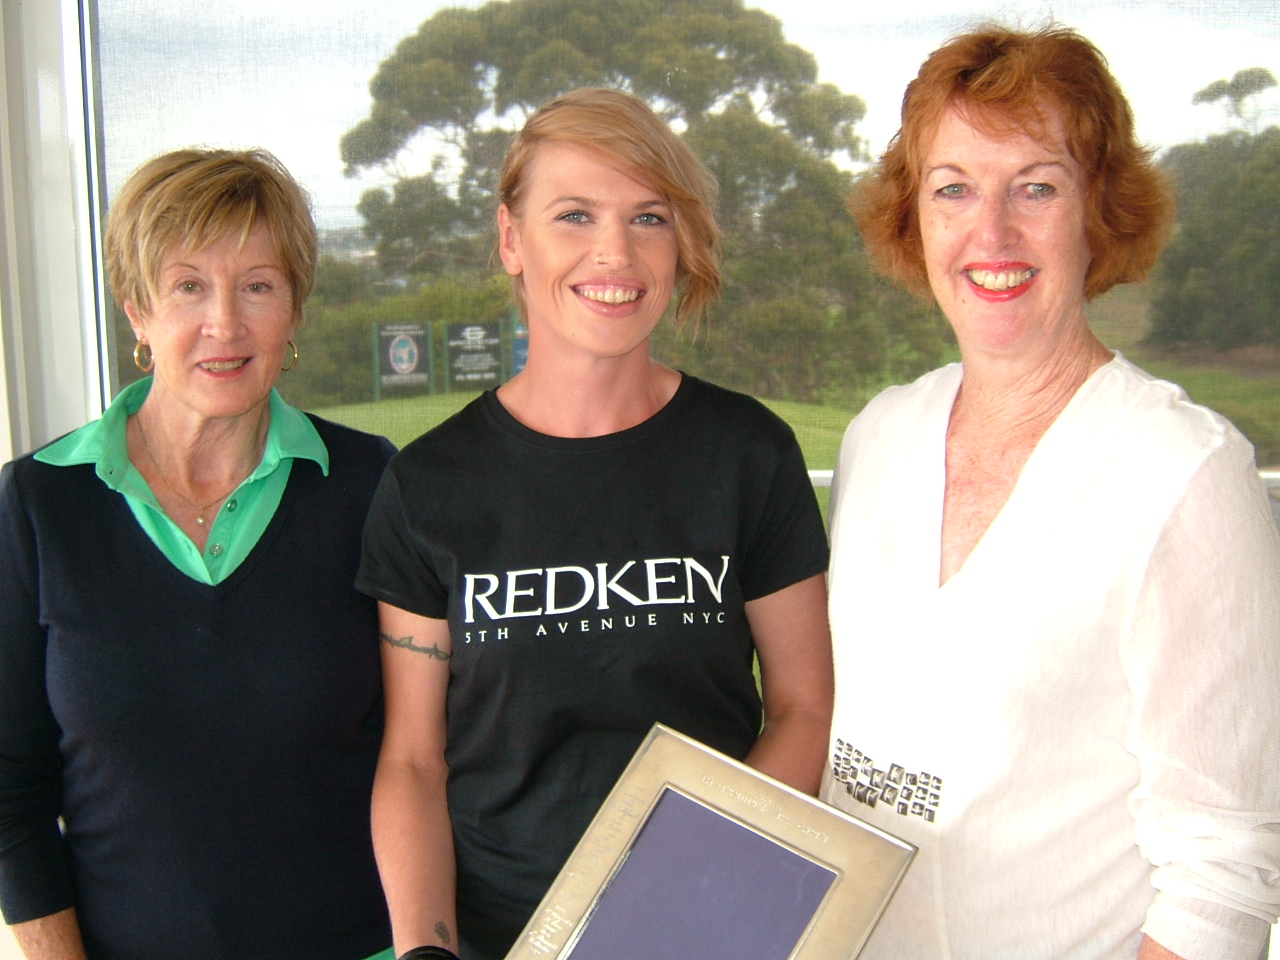 Taryn of JaDS Hairdressing (Centre) with Winners Julie Howard (L) and Lyn Sinclair (R)